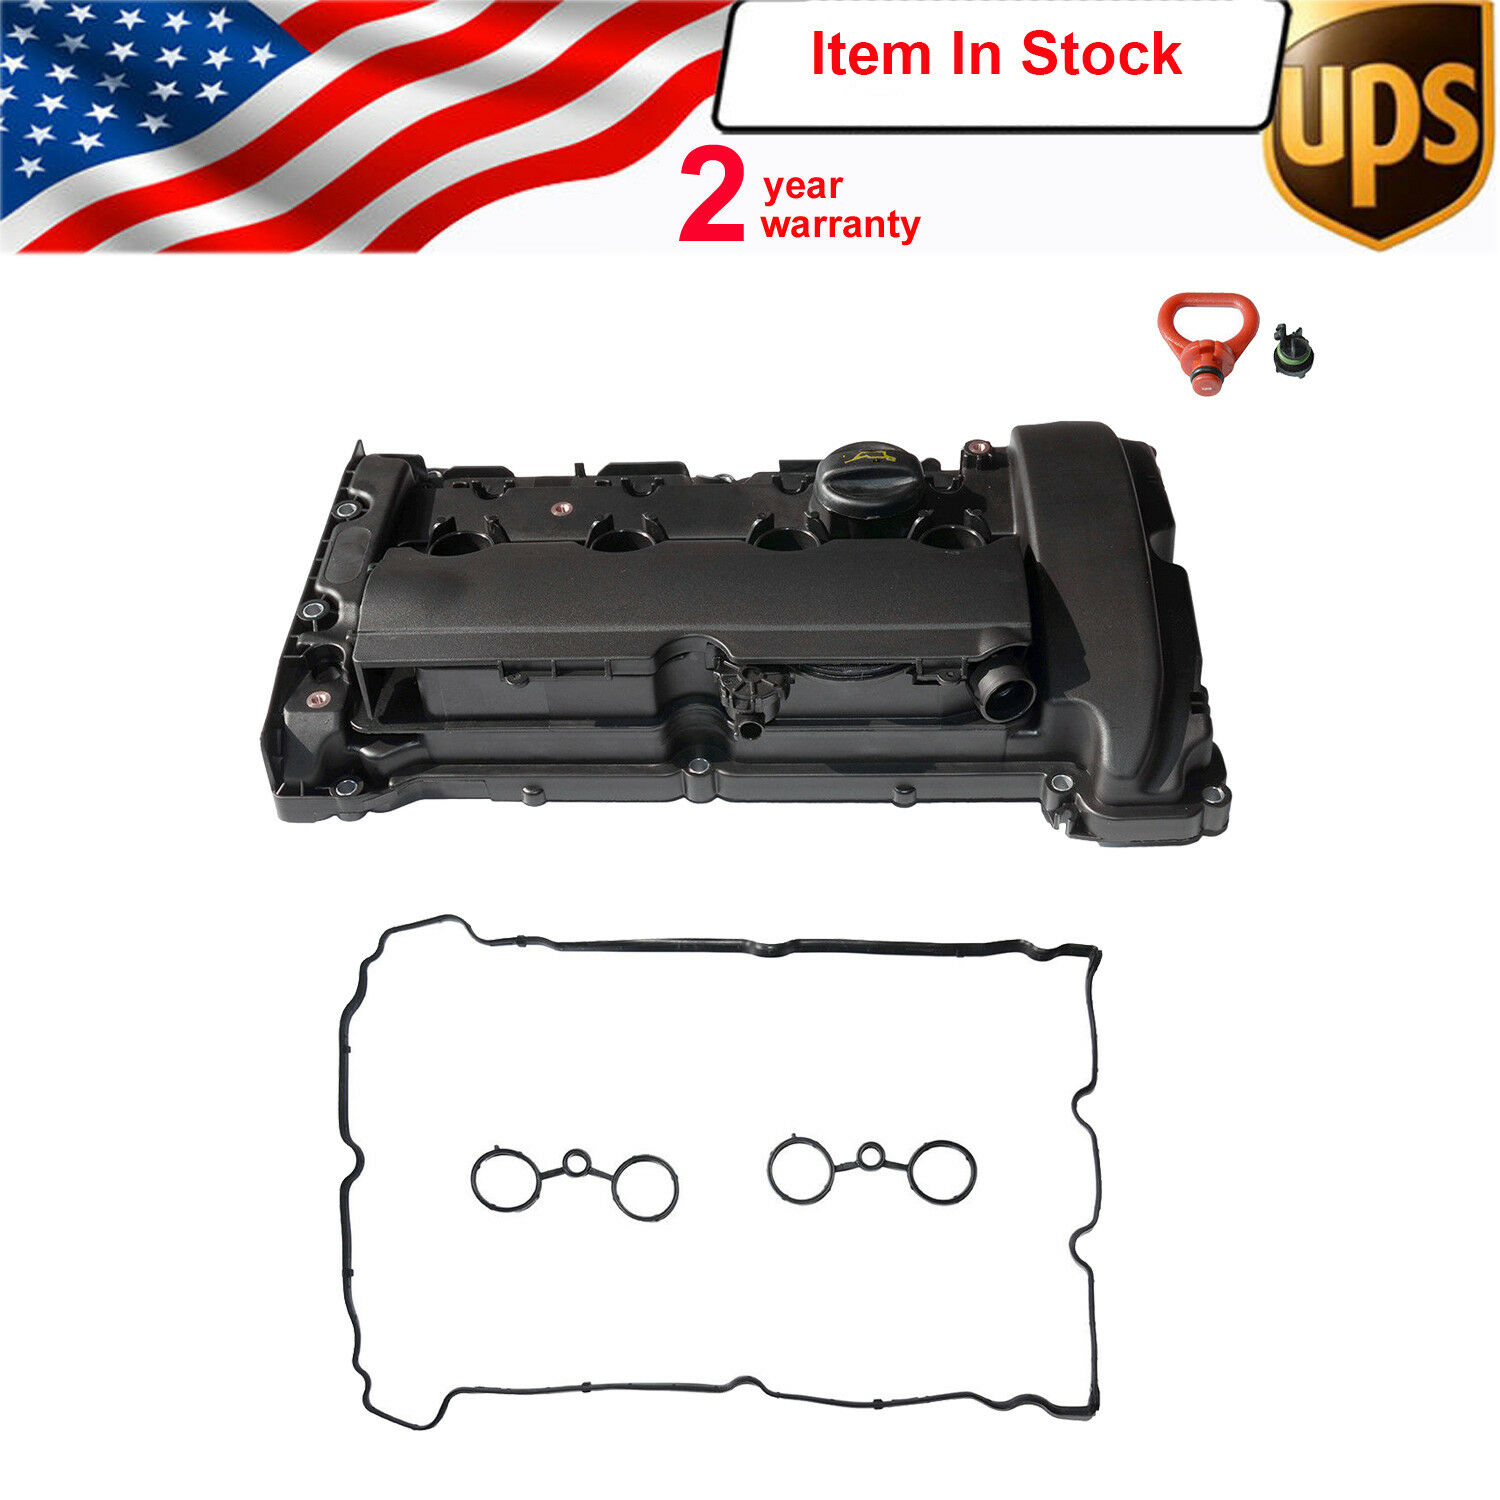 AP03 N14 For Mini R55 R56 R57 R58 R59 1 6T Cooper S JCW Engine Cylinder Valve Cover w  Gasket 11127585907 11127646555